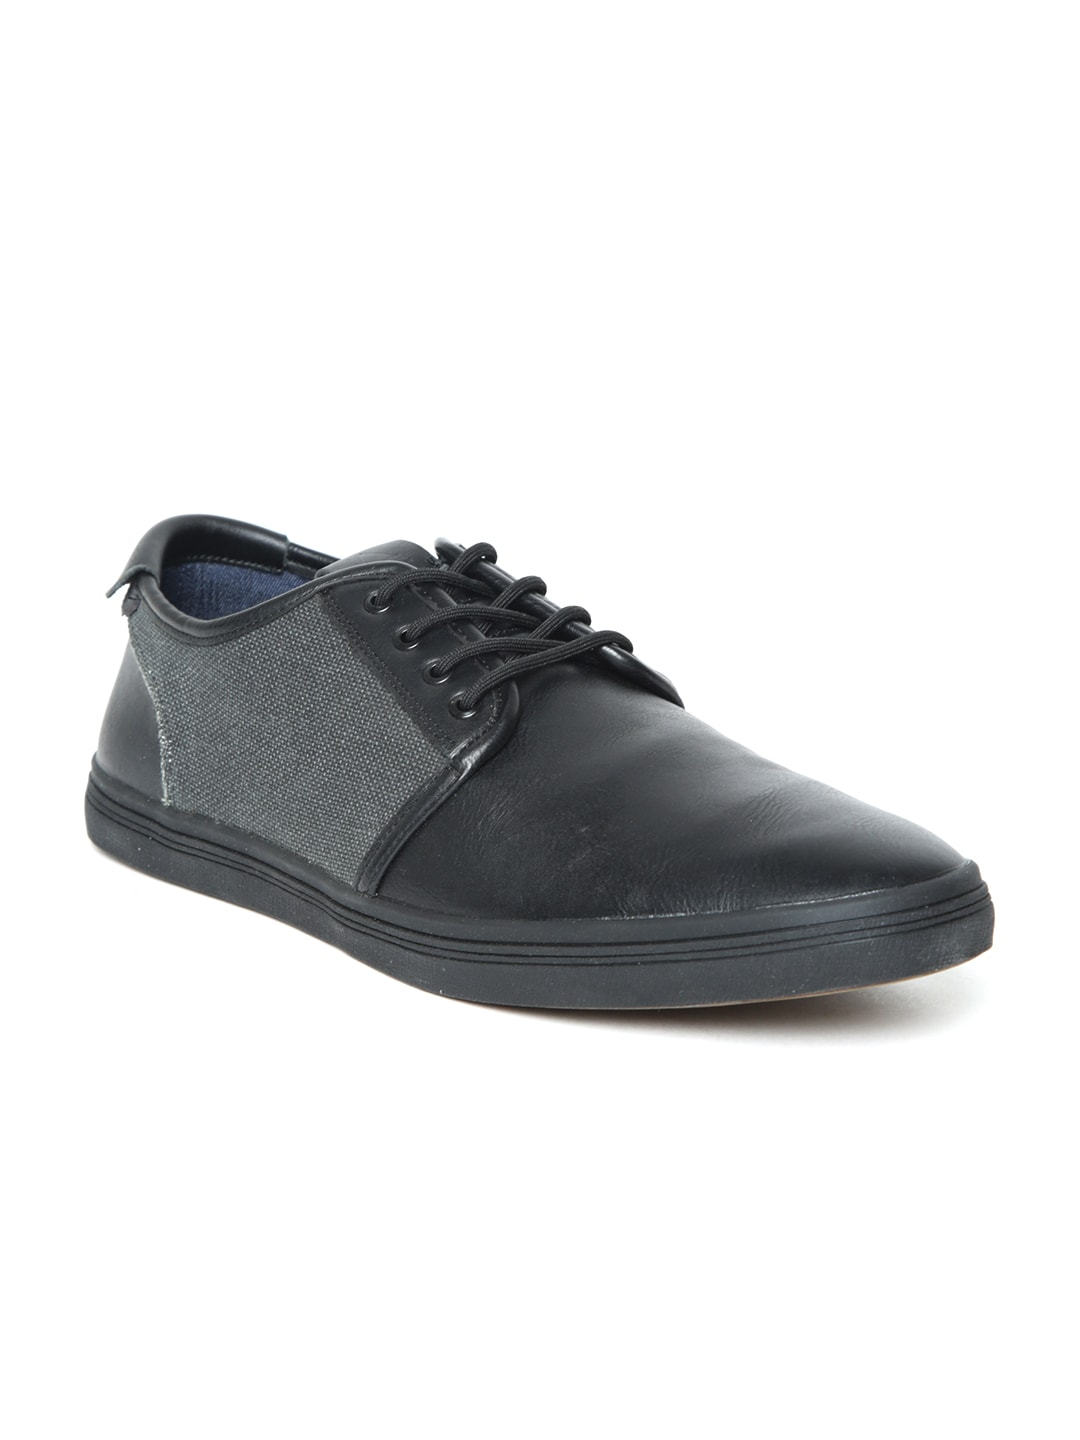 2e4b0ed280f2 ALDO Shoes - Buy Shoes from ALDO Online Store in India